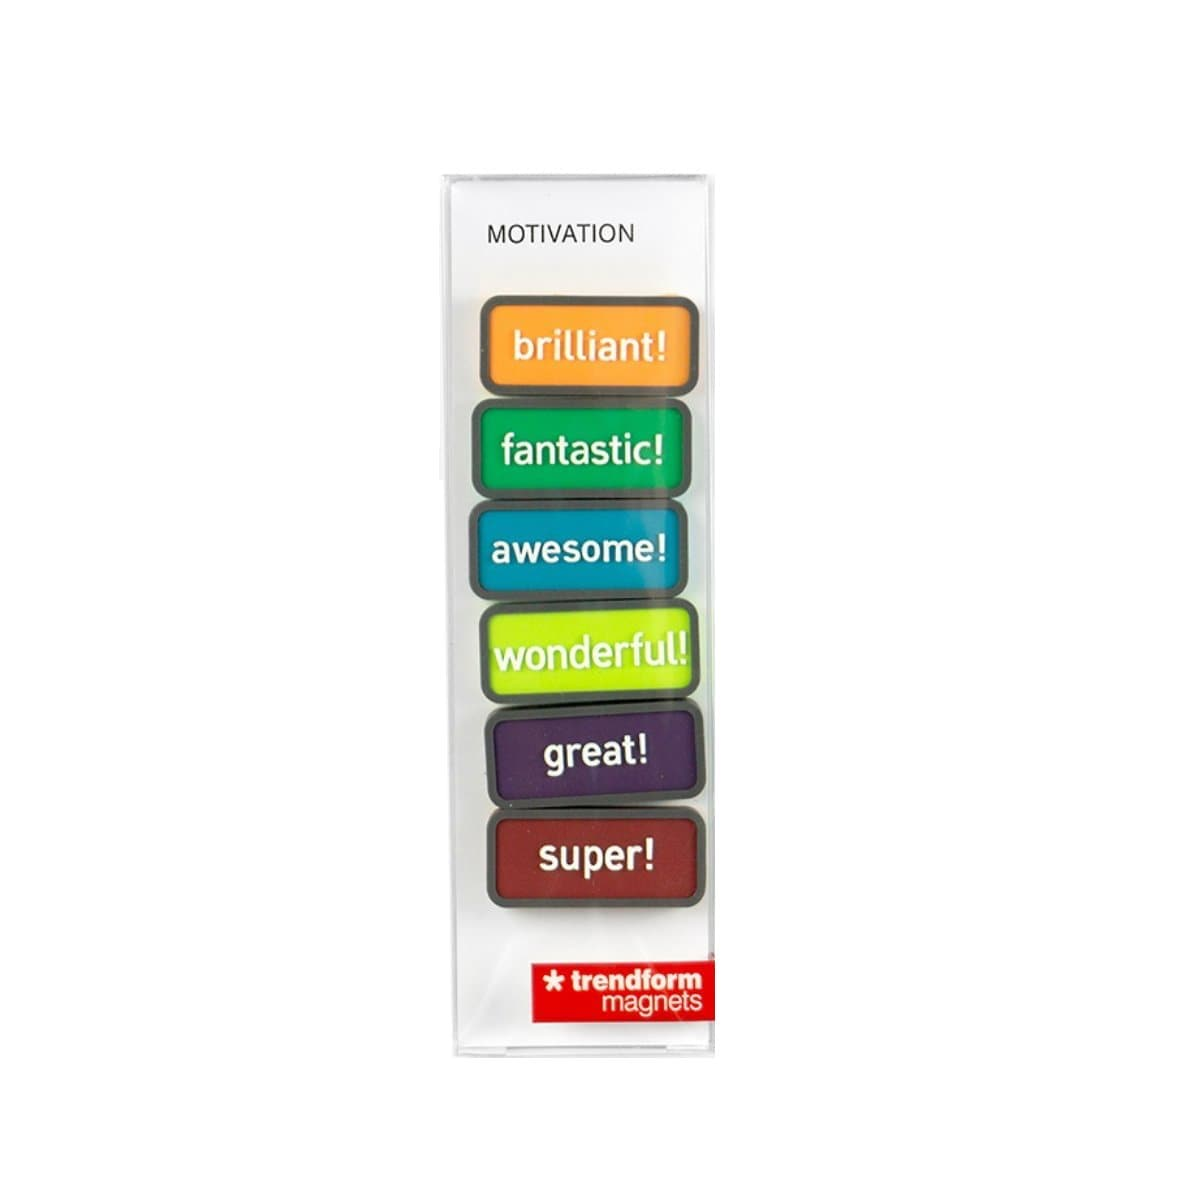 Trendform Magnets MOTIVATION, Set of 6, Assorted Colors